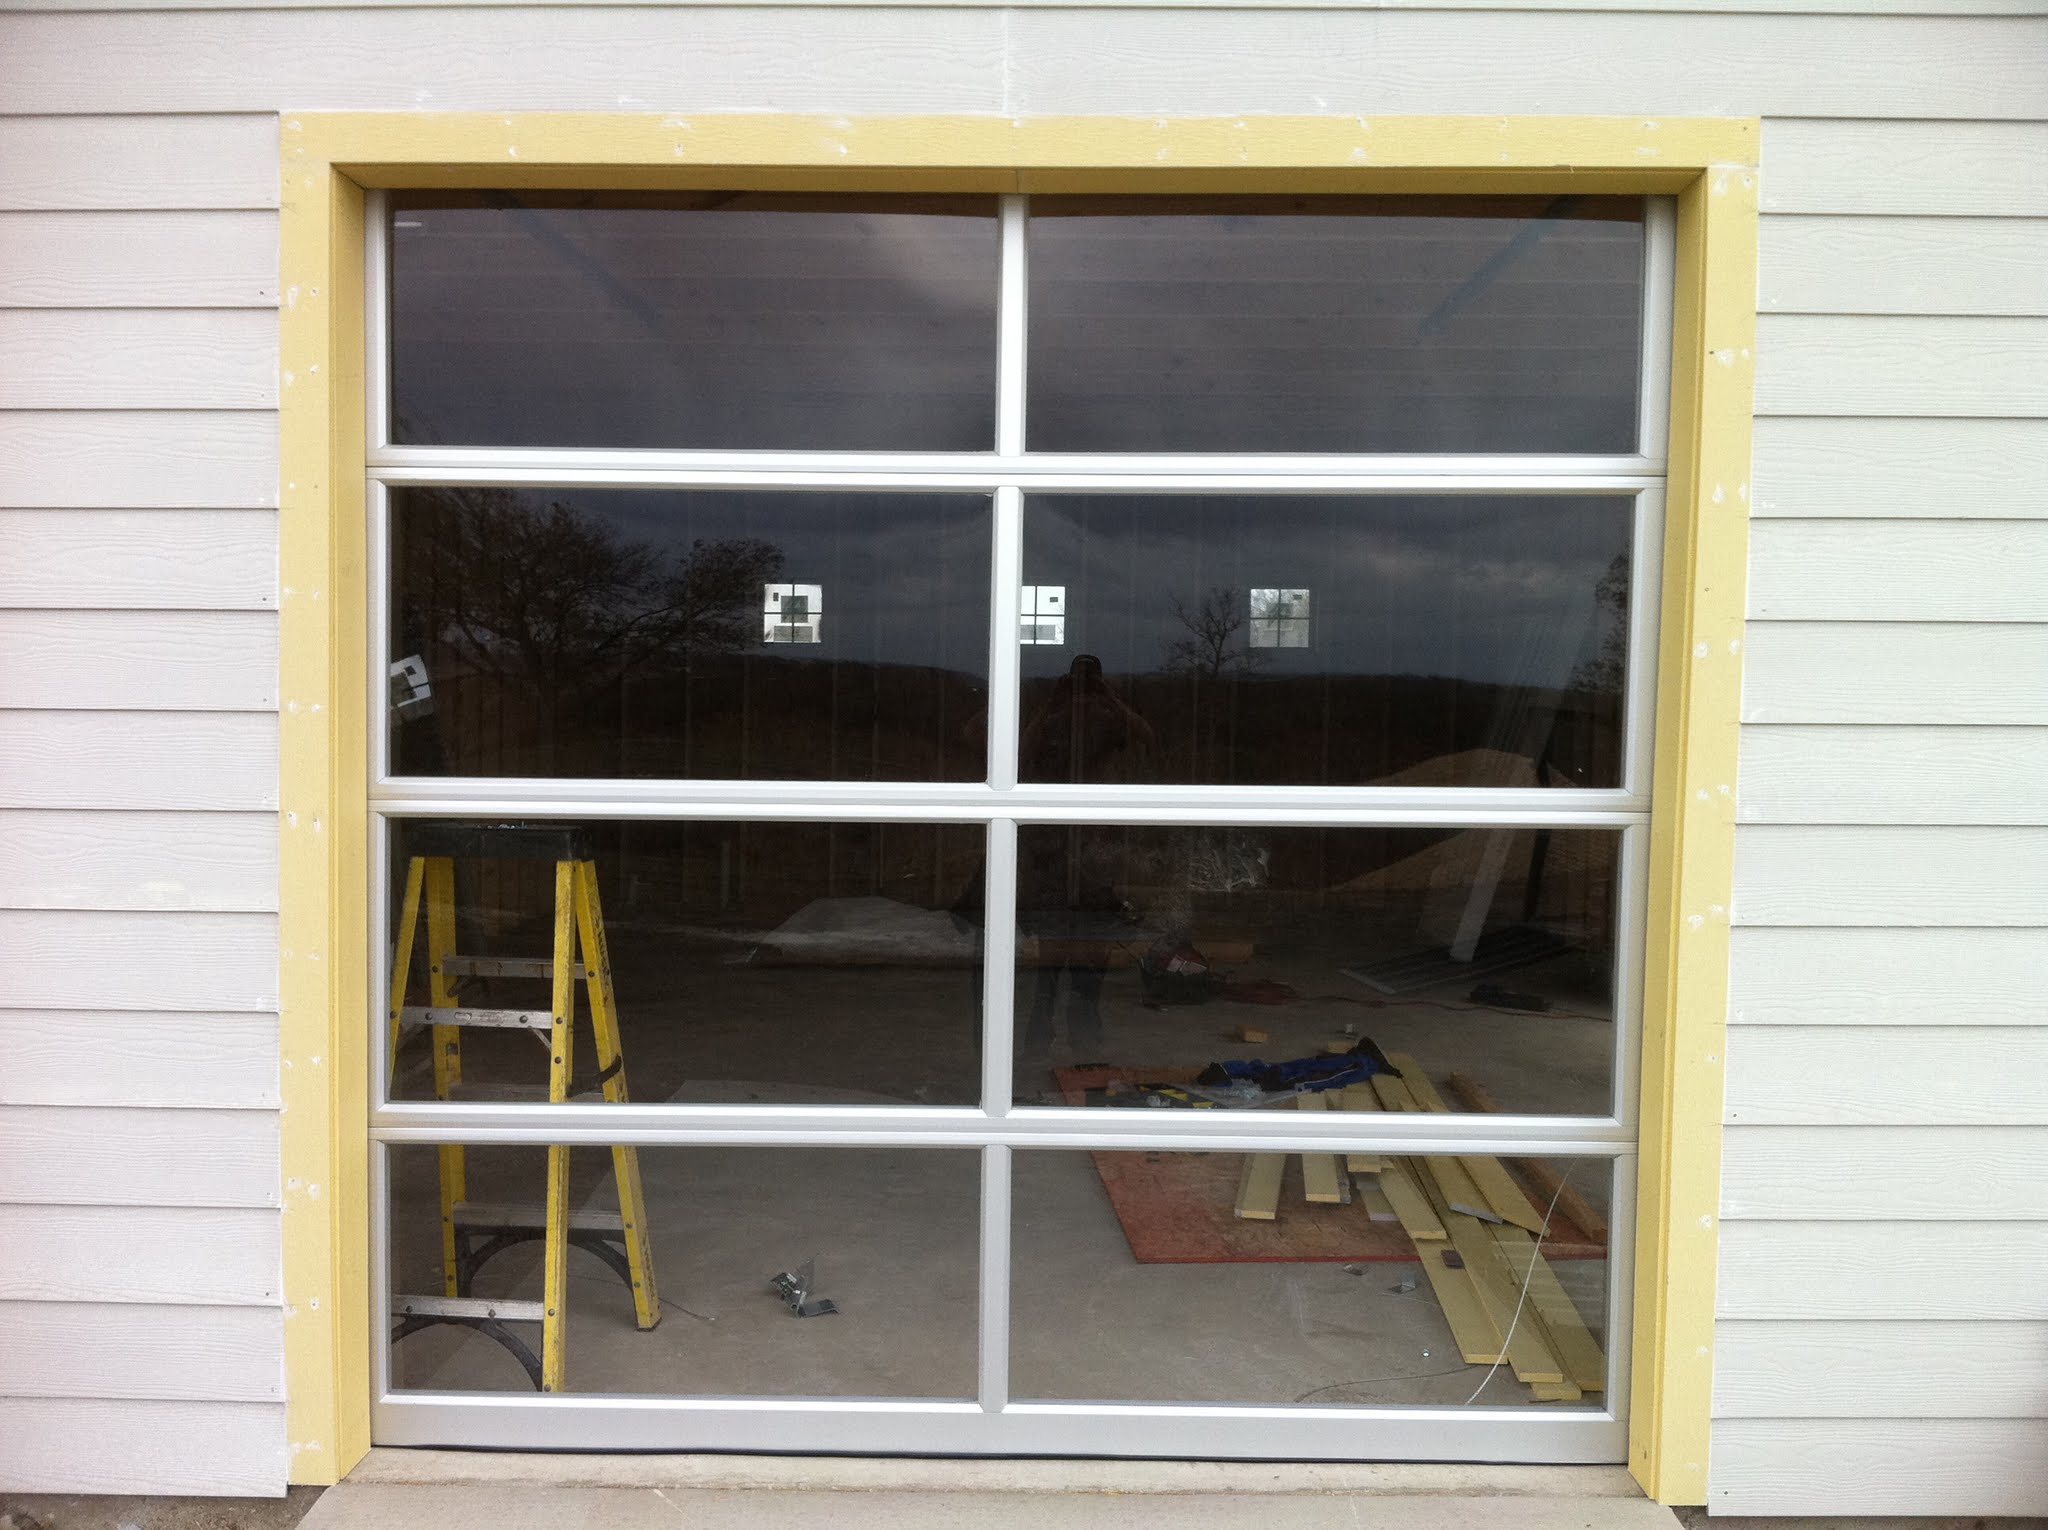 92 glass overhead garage door glass garage doors with for Cedar park overhead garage doors